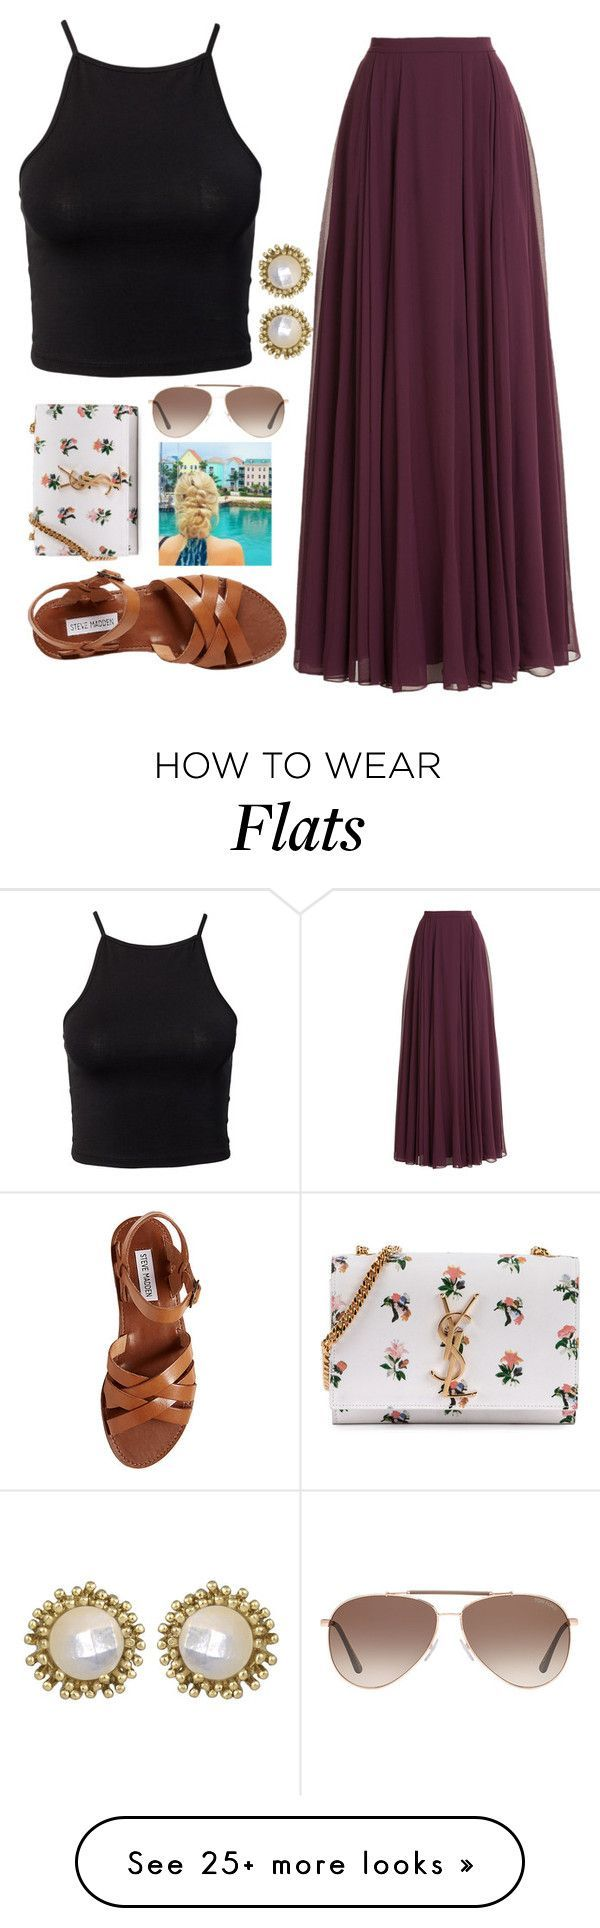 """Comment!!"" by emmaintn on Polyvore featuring Halston Heritage, NLY Trend, Steve Madden, Yves Saint Laurent, Tom Ford and Kendra Scott"